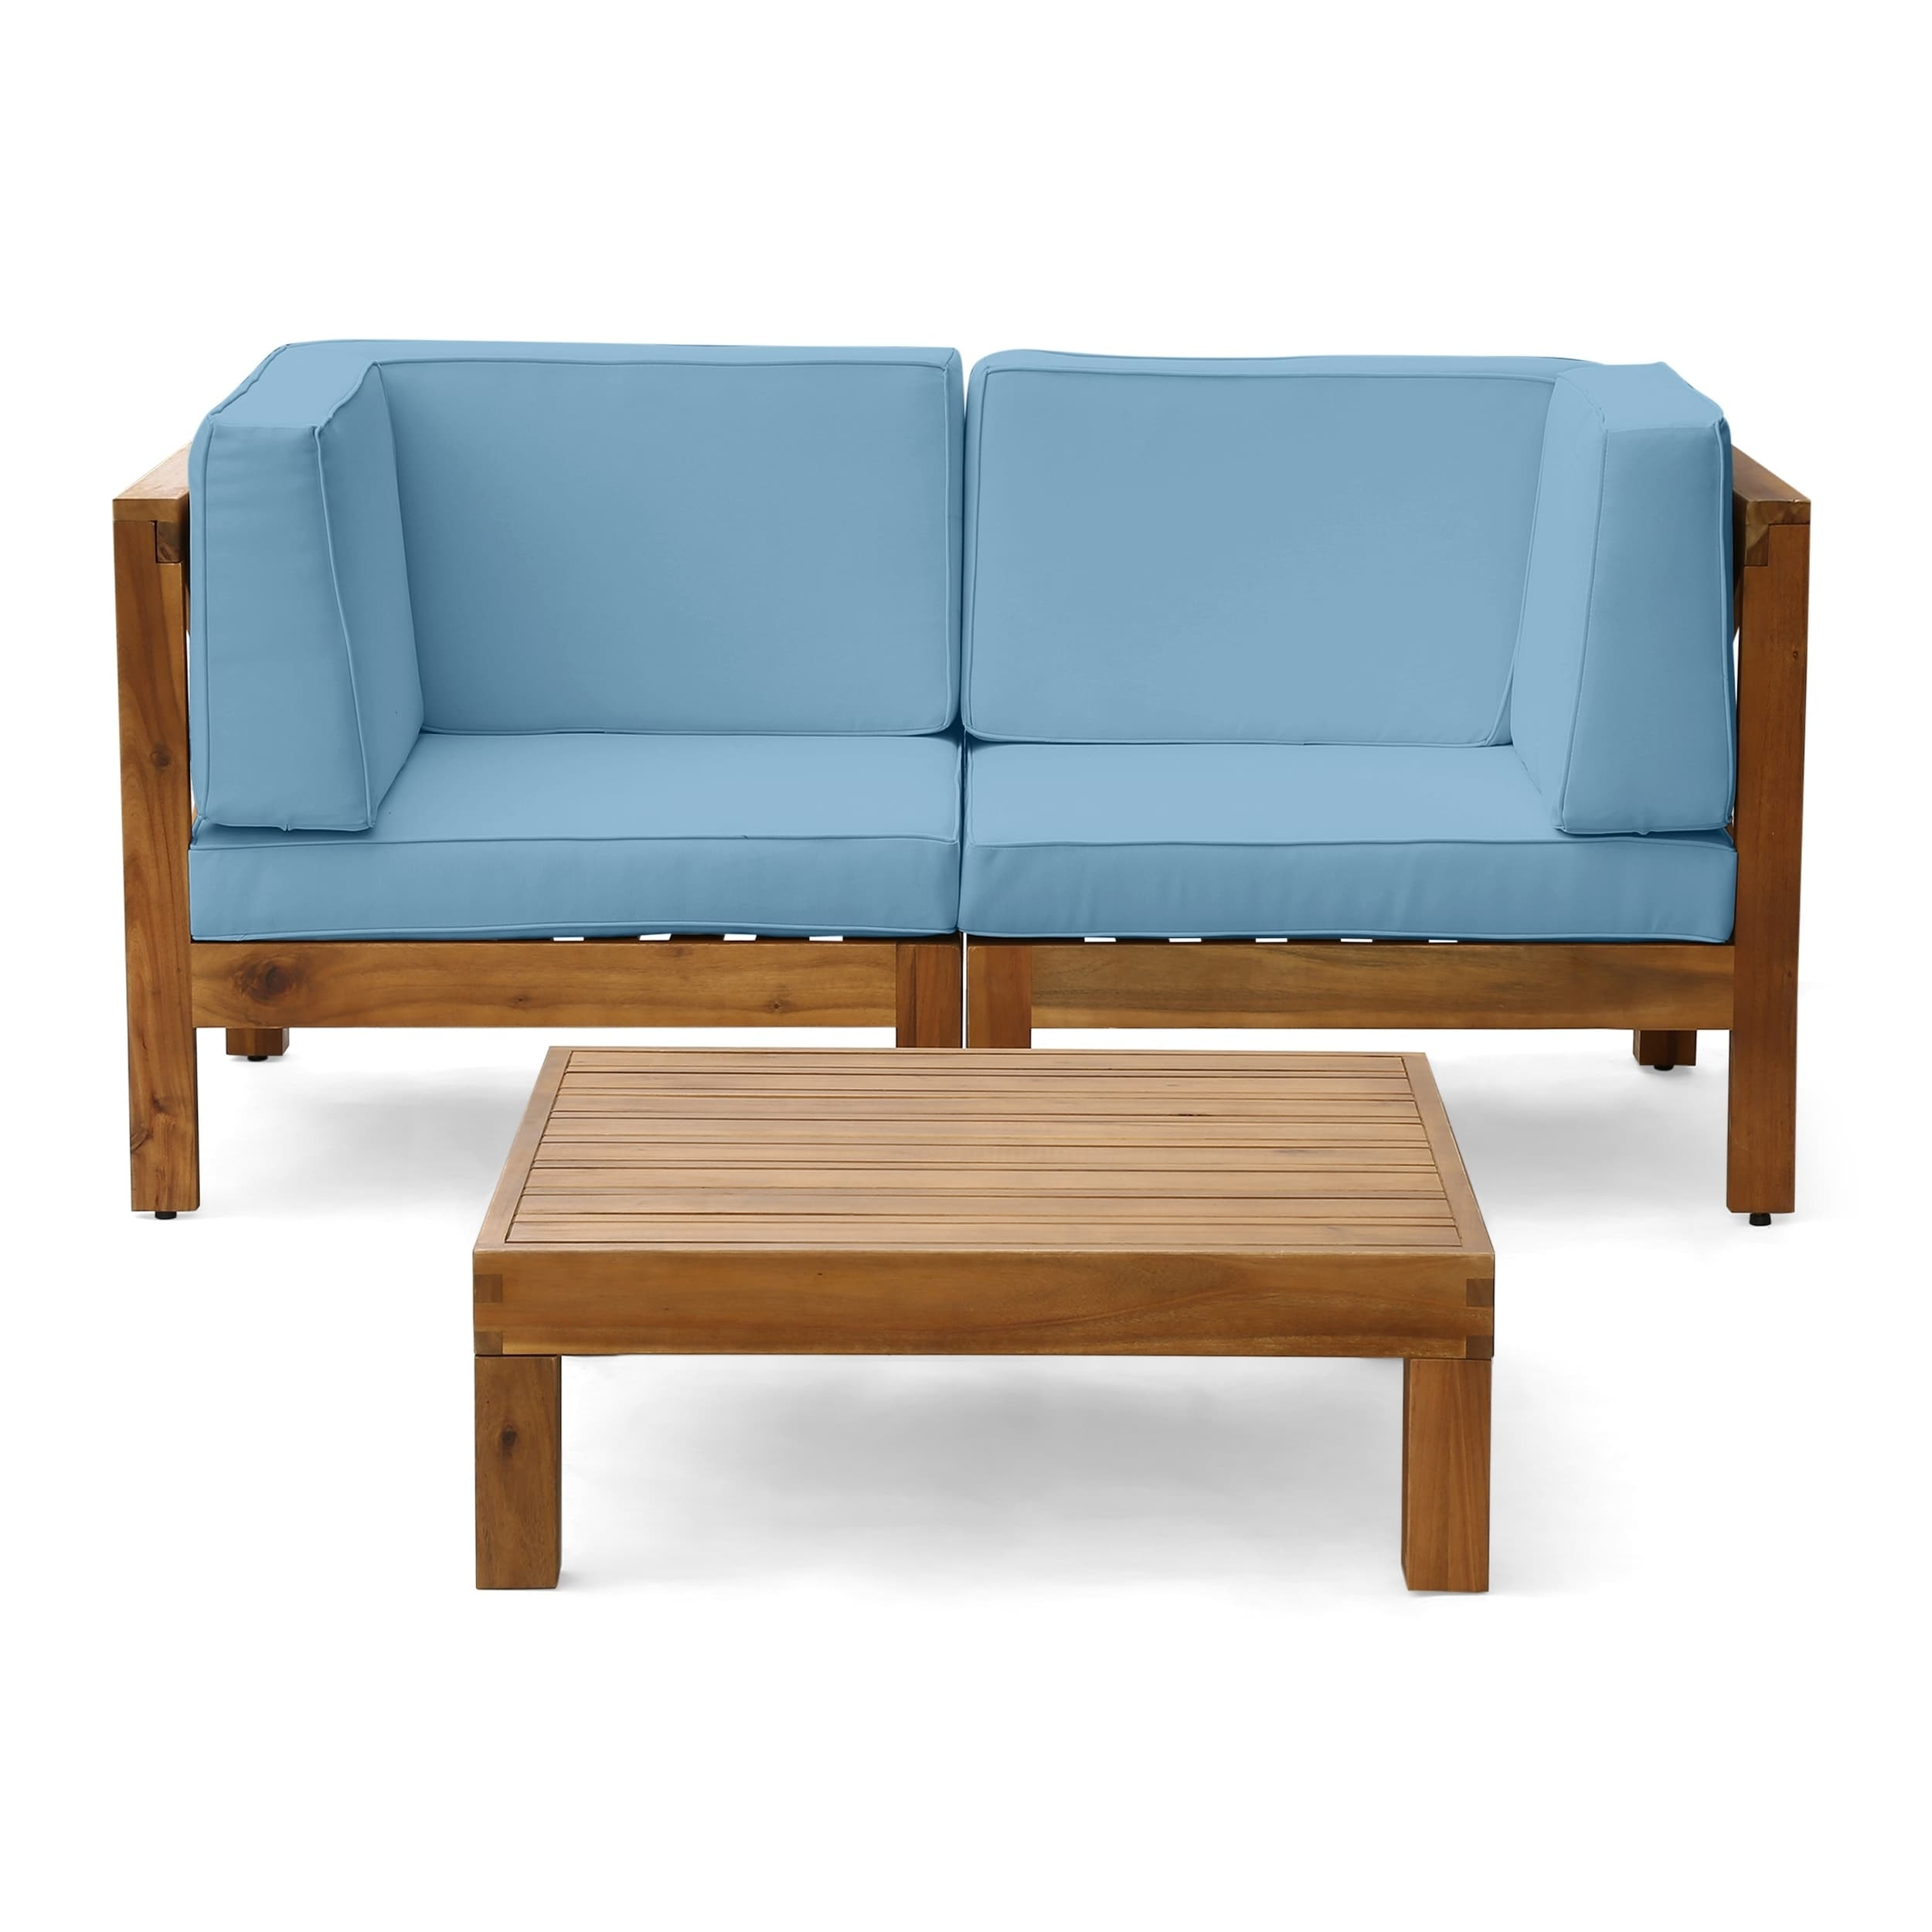 Christopher Knight Home Oana Outdoor 2-Seater Acacia Wood Sectional Loveseat Set by